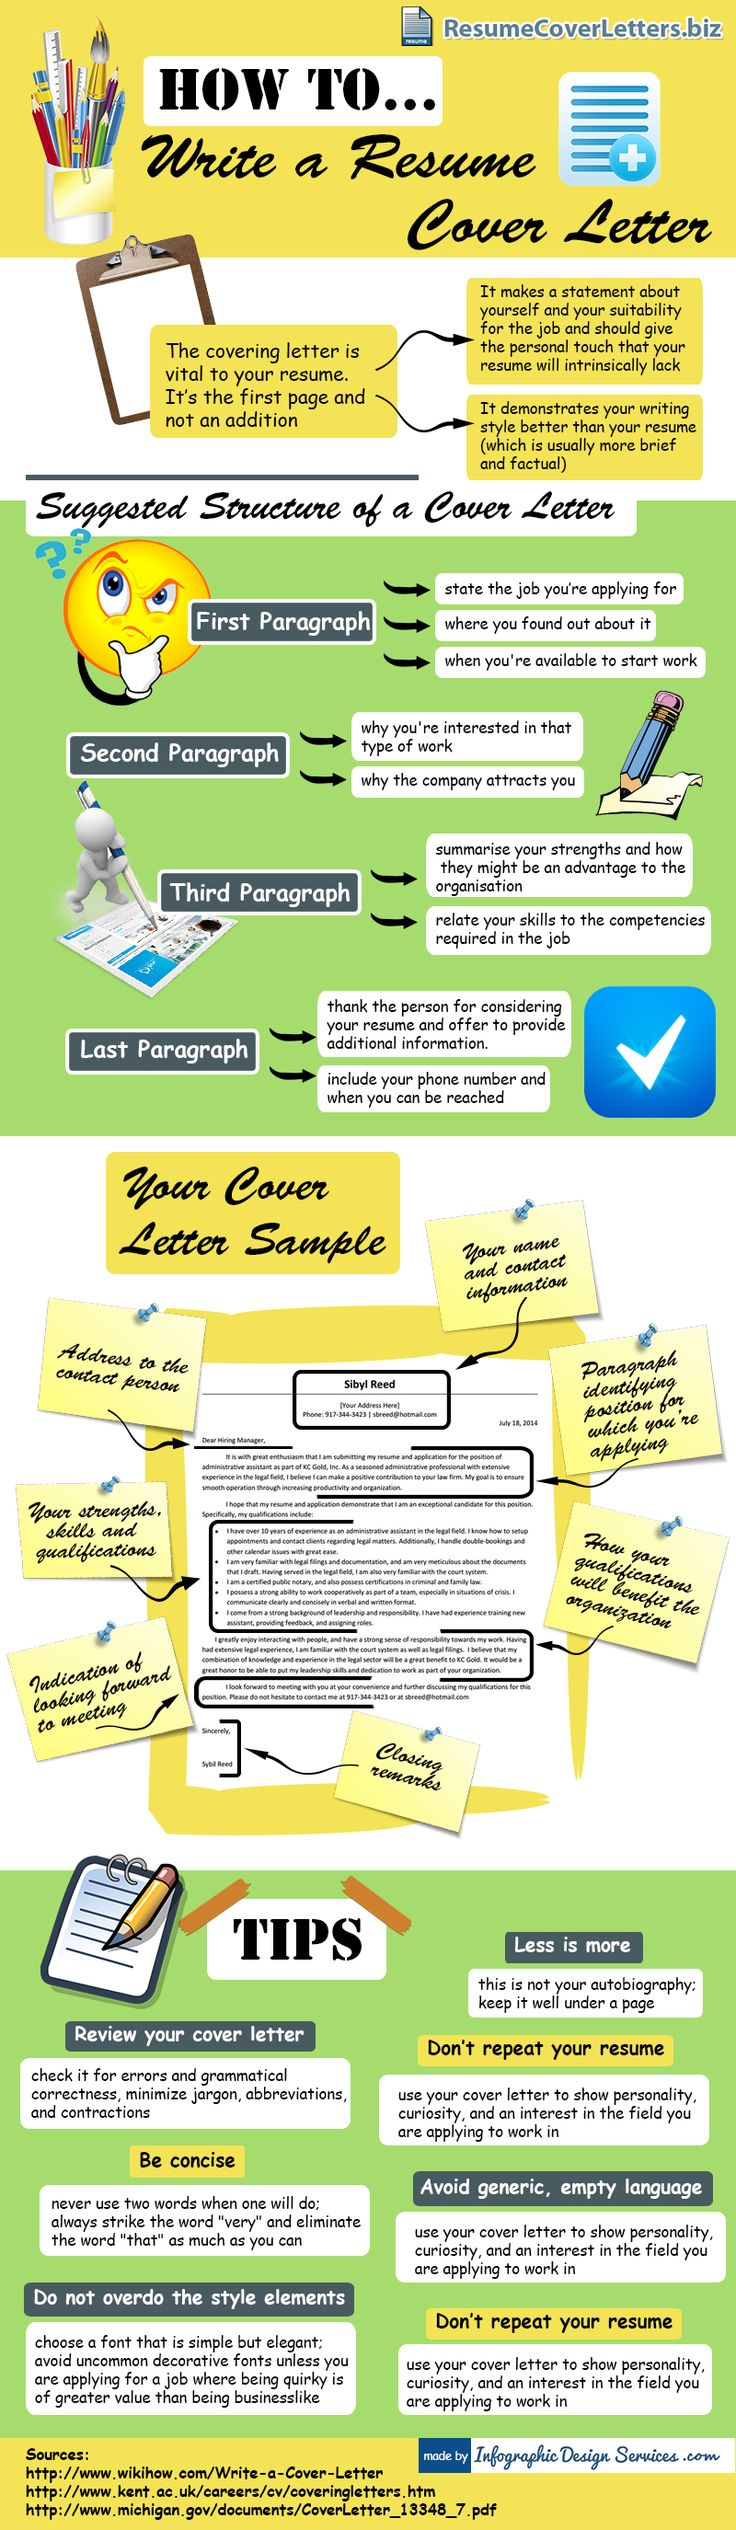 Resume Cover Letter Writing Tips | Visual.ly